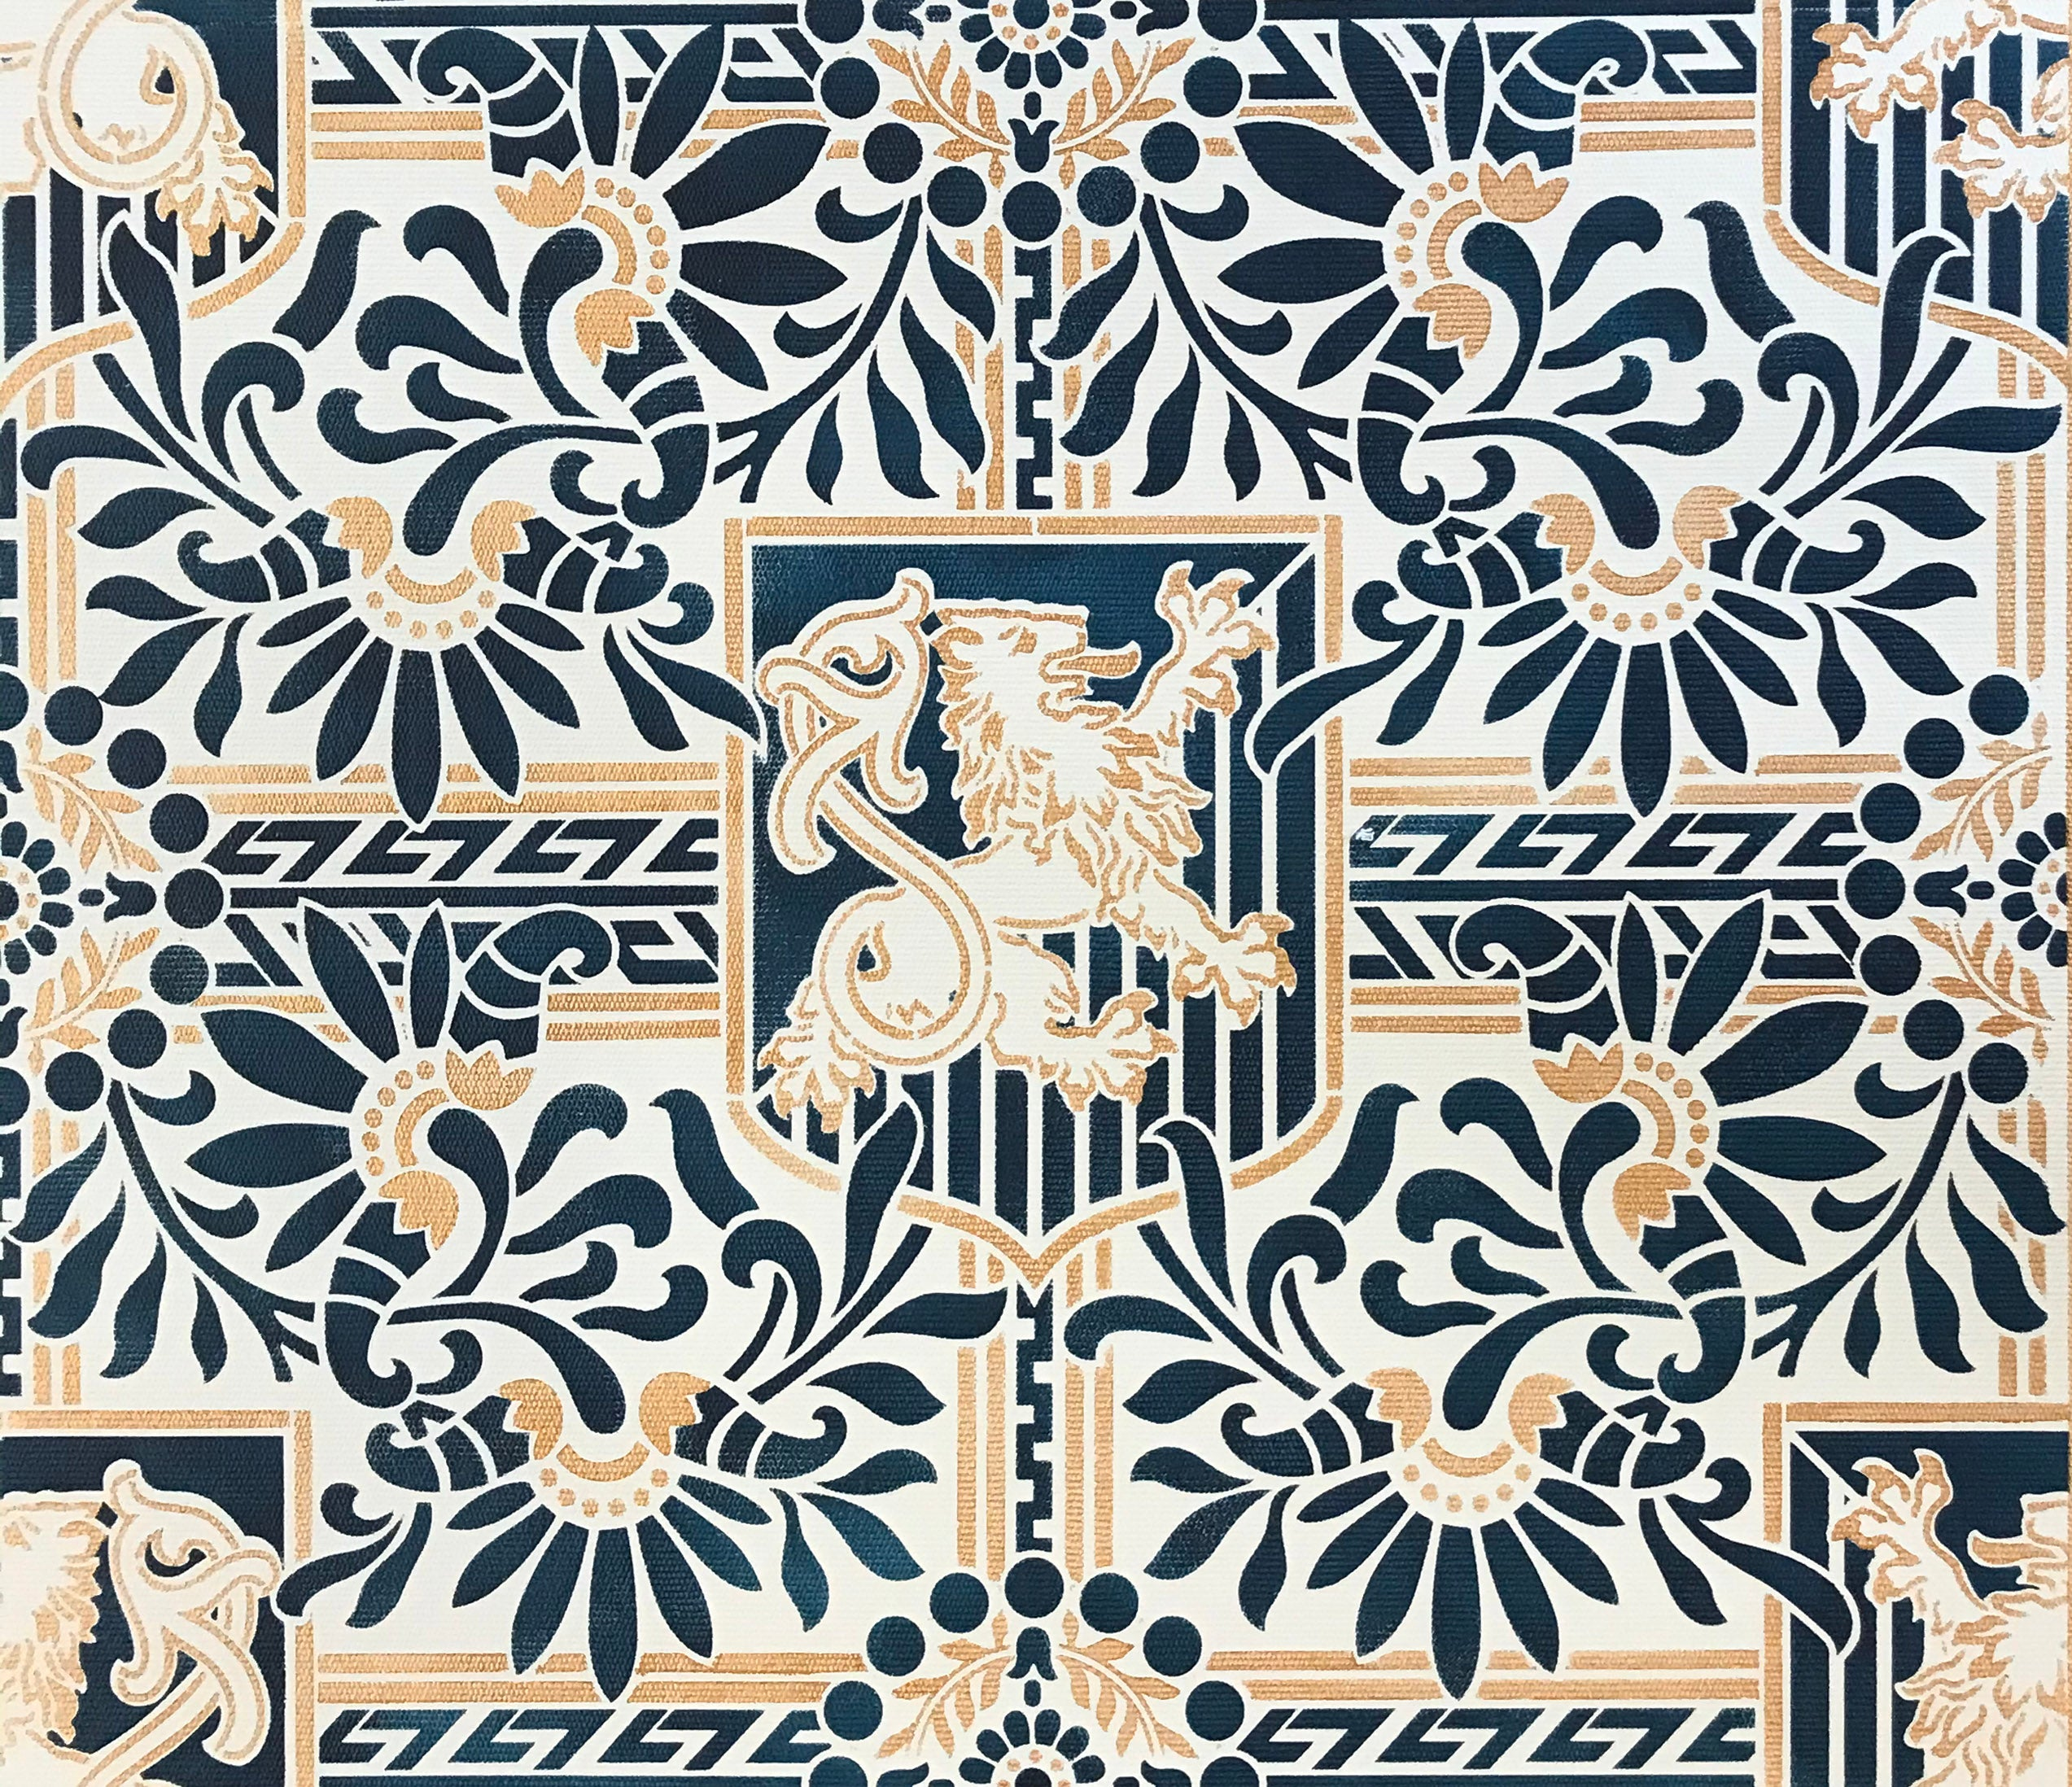 A close up of the pattern for this floorcloth featuring a lion in shield with floral and Greek Key elements.